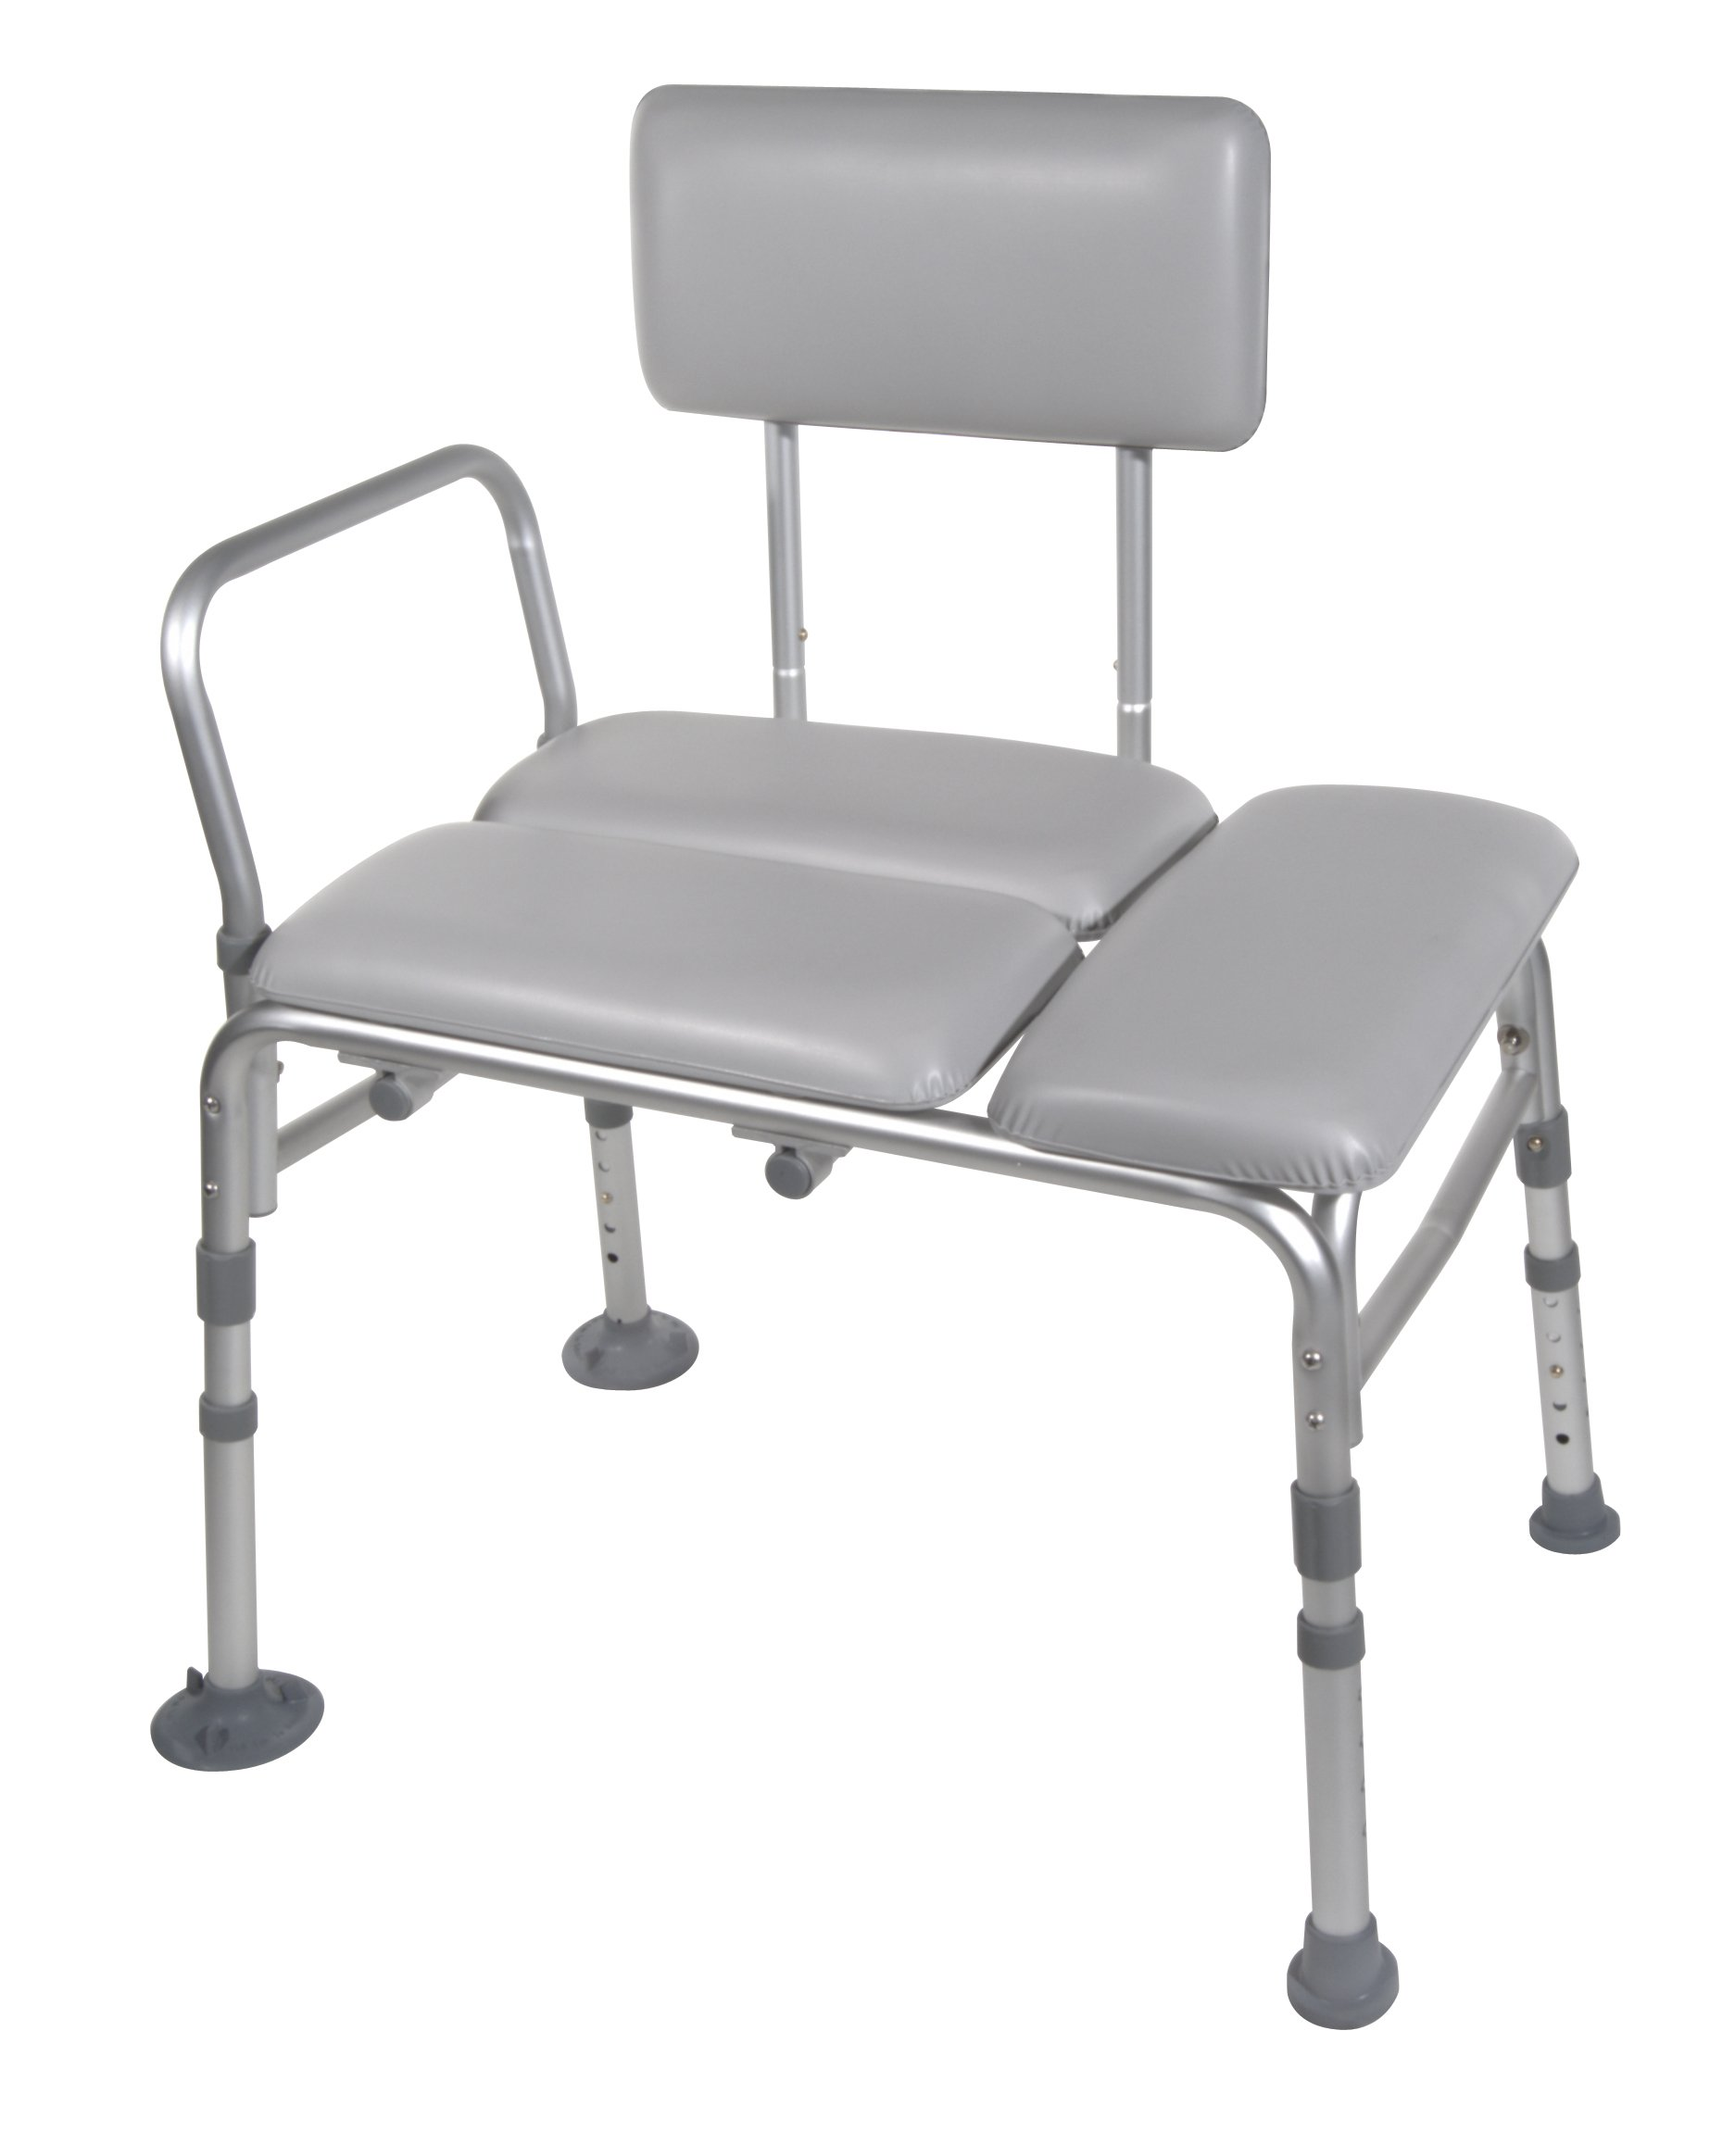 Drive Medical Padded Seat Transfer Bench, Gray by Drive Medical